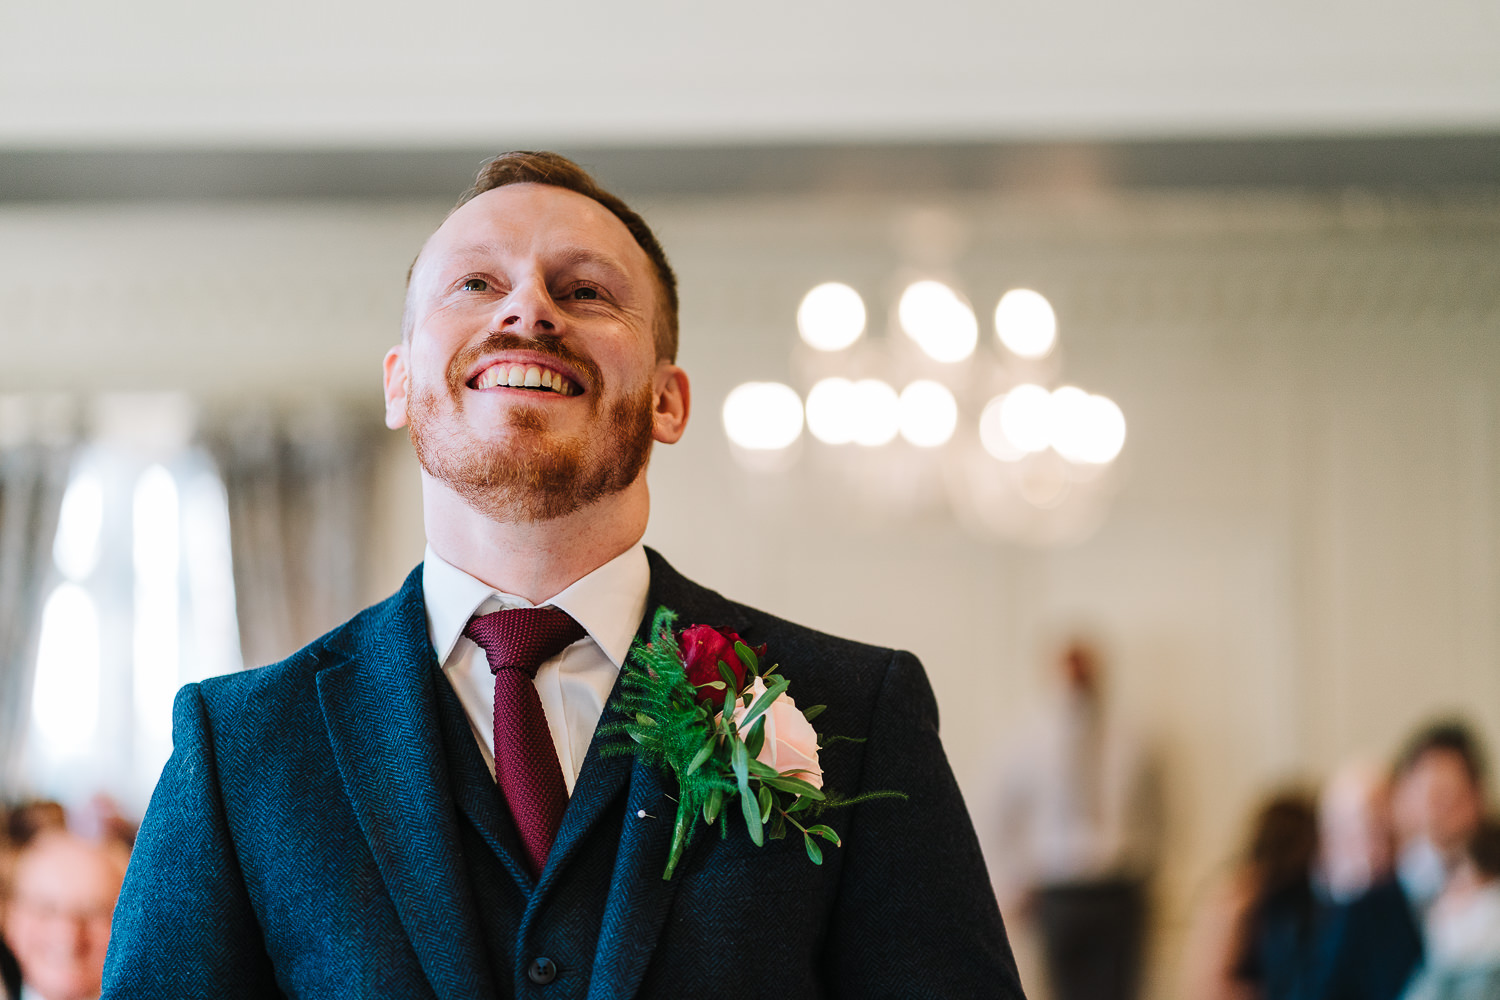 Groom smiling before the bride walks down the aisle at Eaves Hall